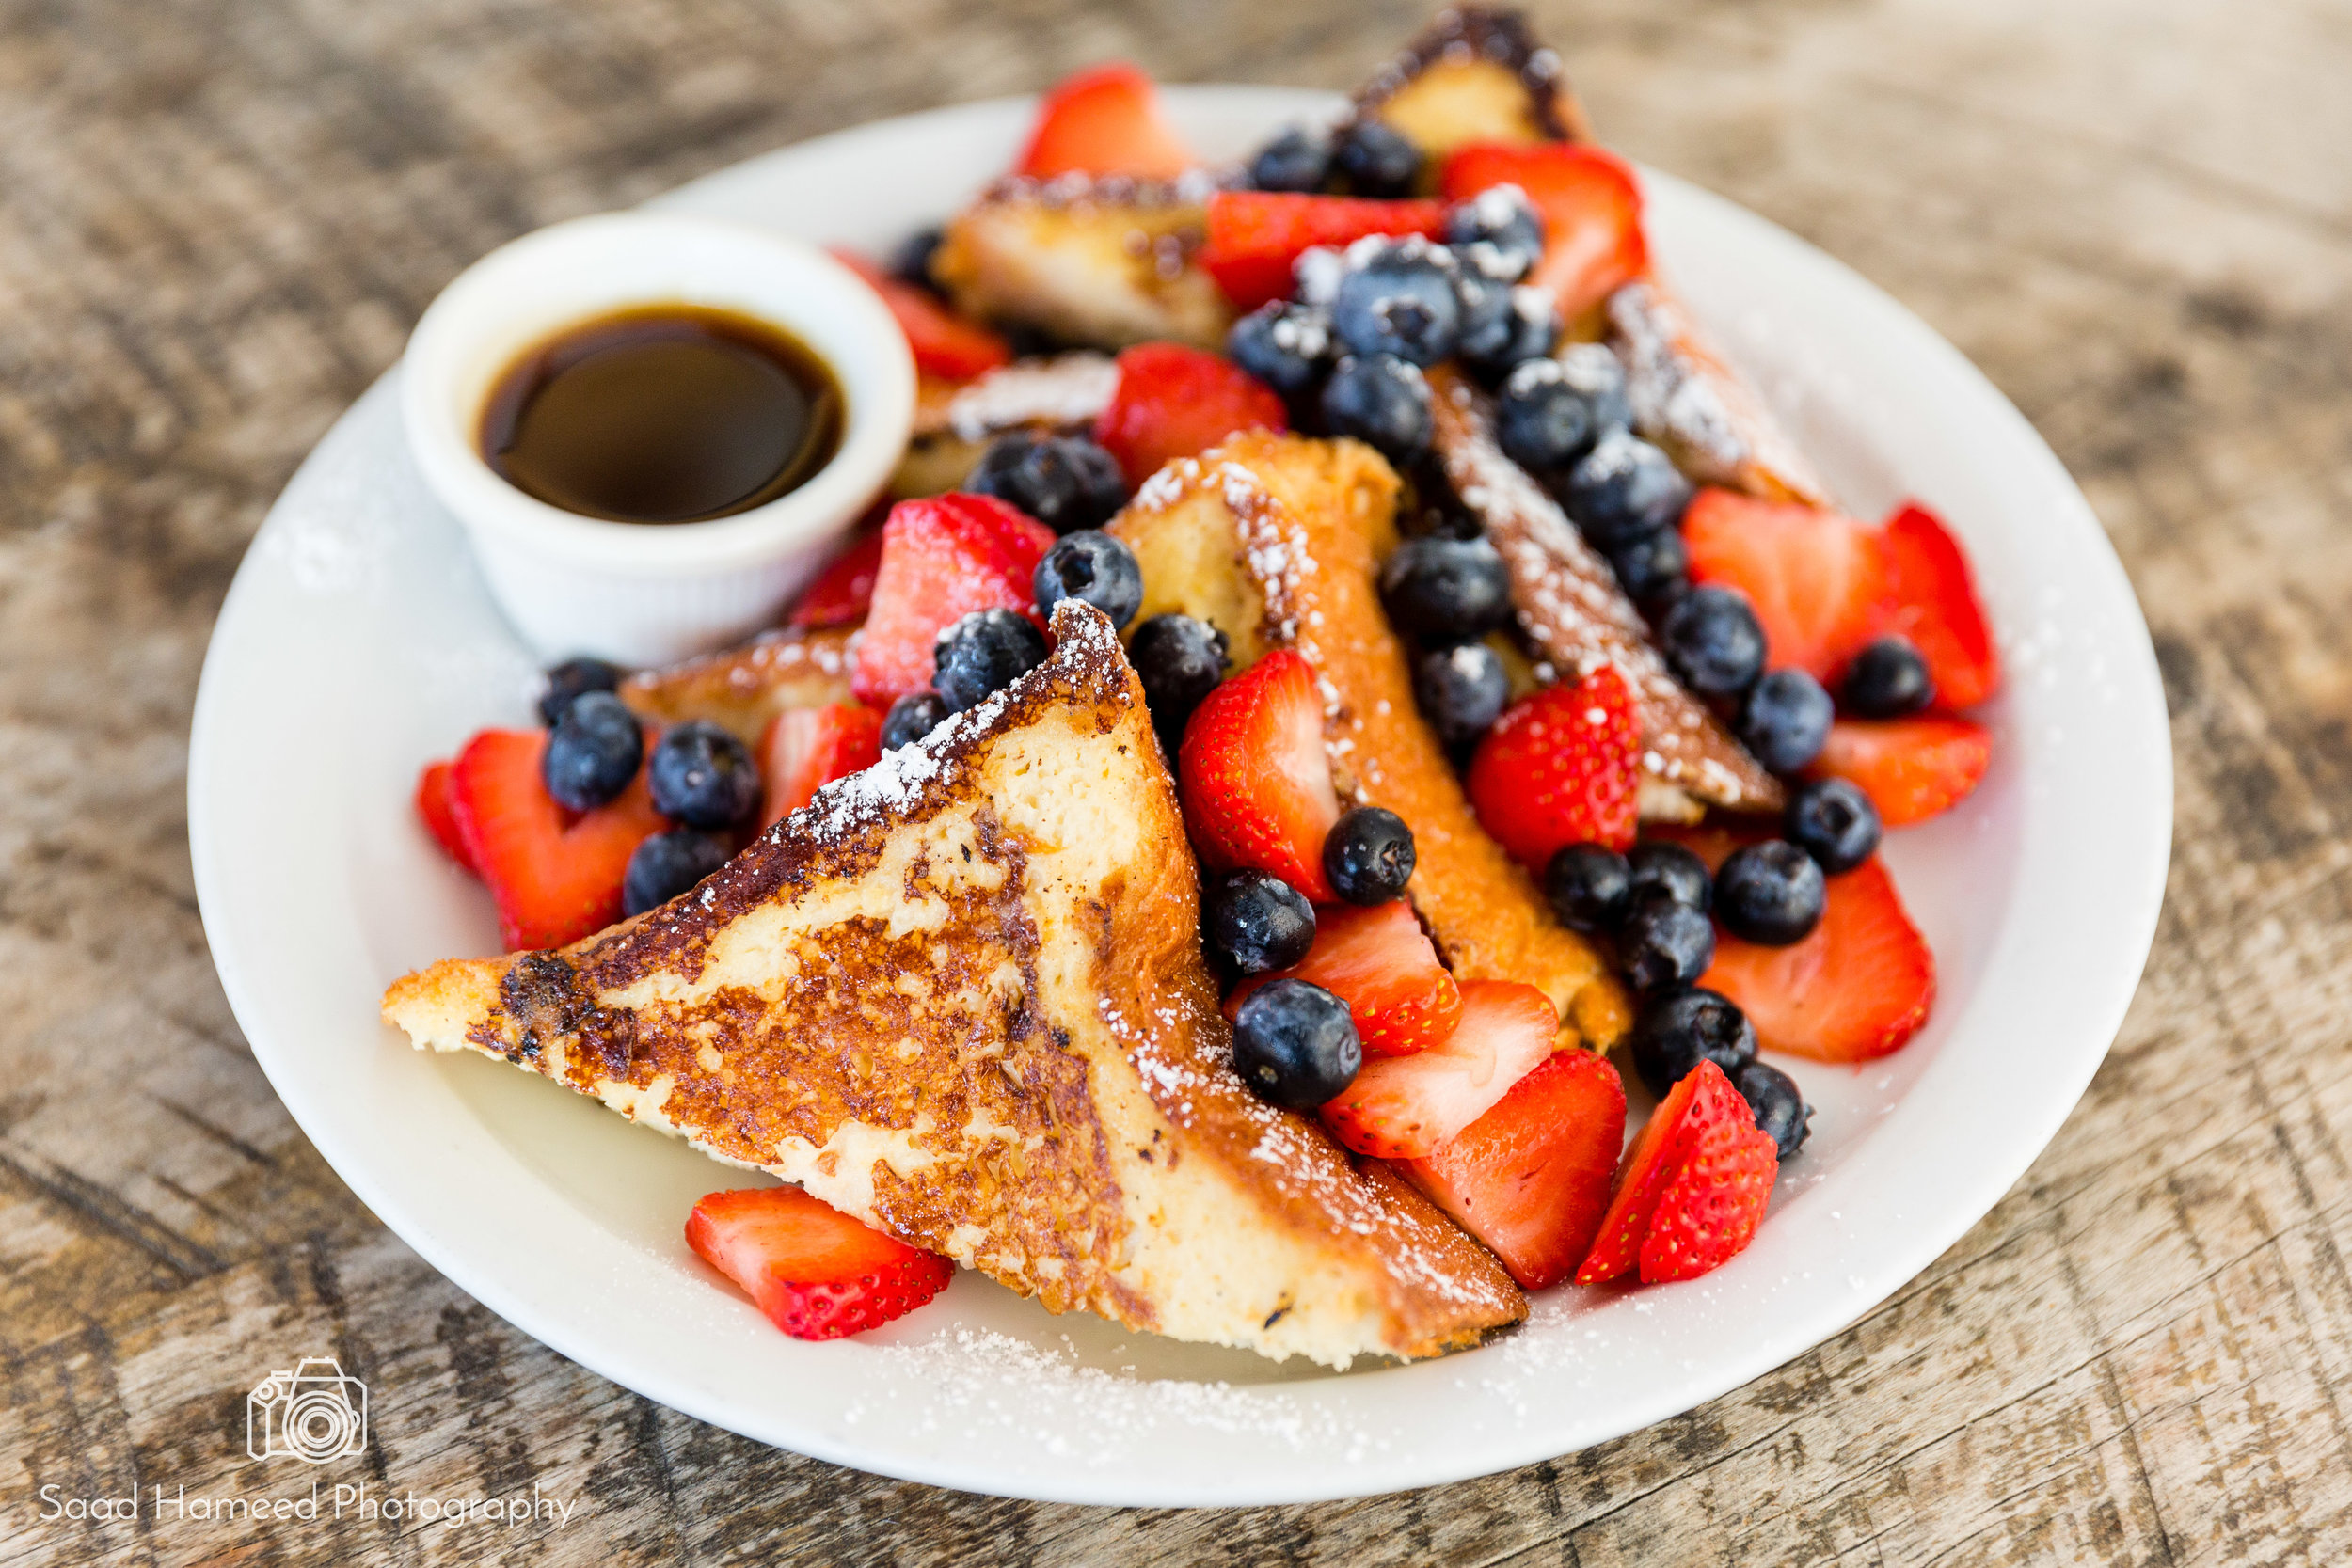 BardonnaSantaMonica_BreakfastThings_FrenchToast_2-Edit.jpg